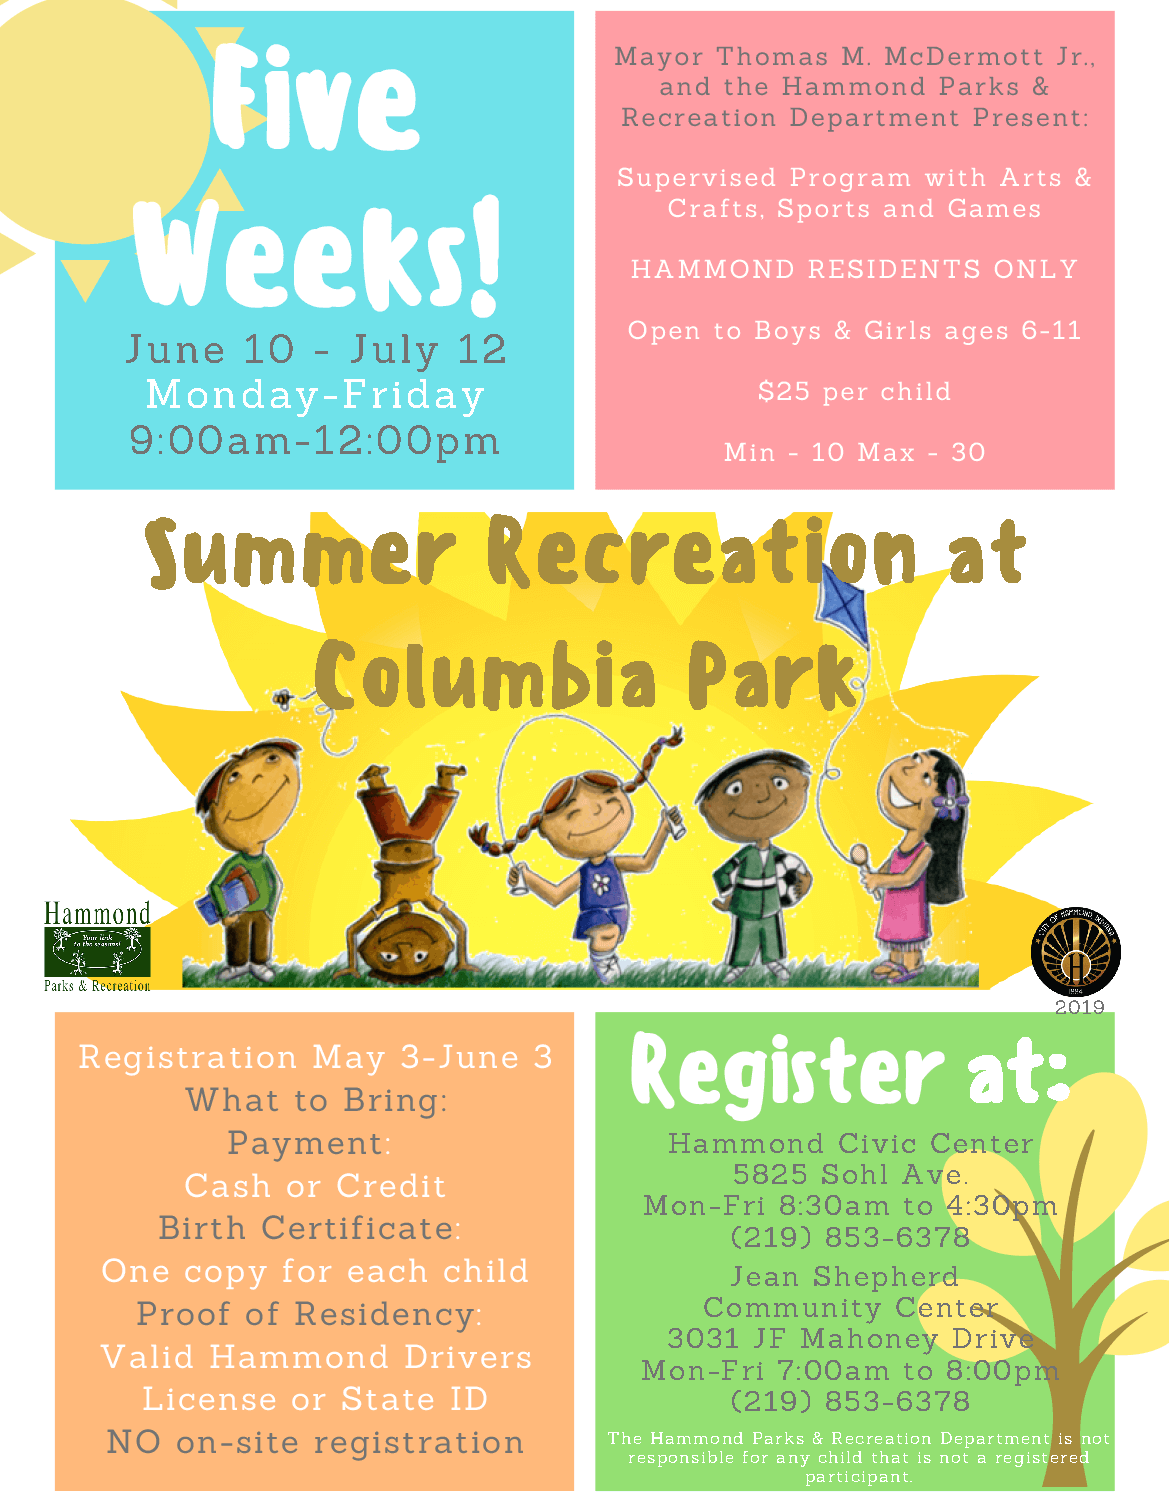 Mayor Thomas M. McDermott, Jr. and Hammond Parks & Recreation present:Summer Recreation 2019, a supervised program with Arts & Crafts, Sports and Games.